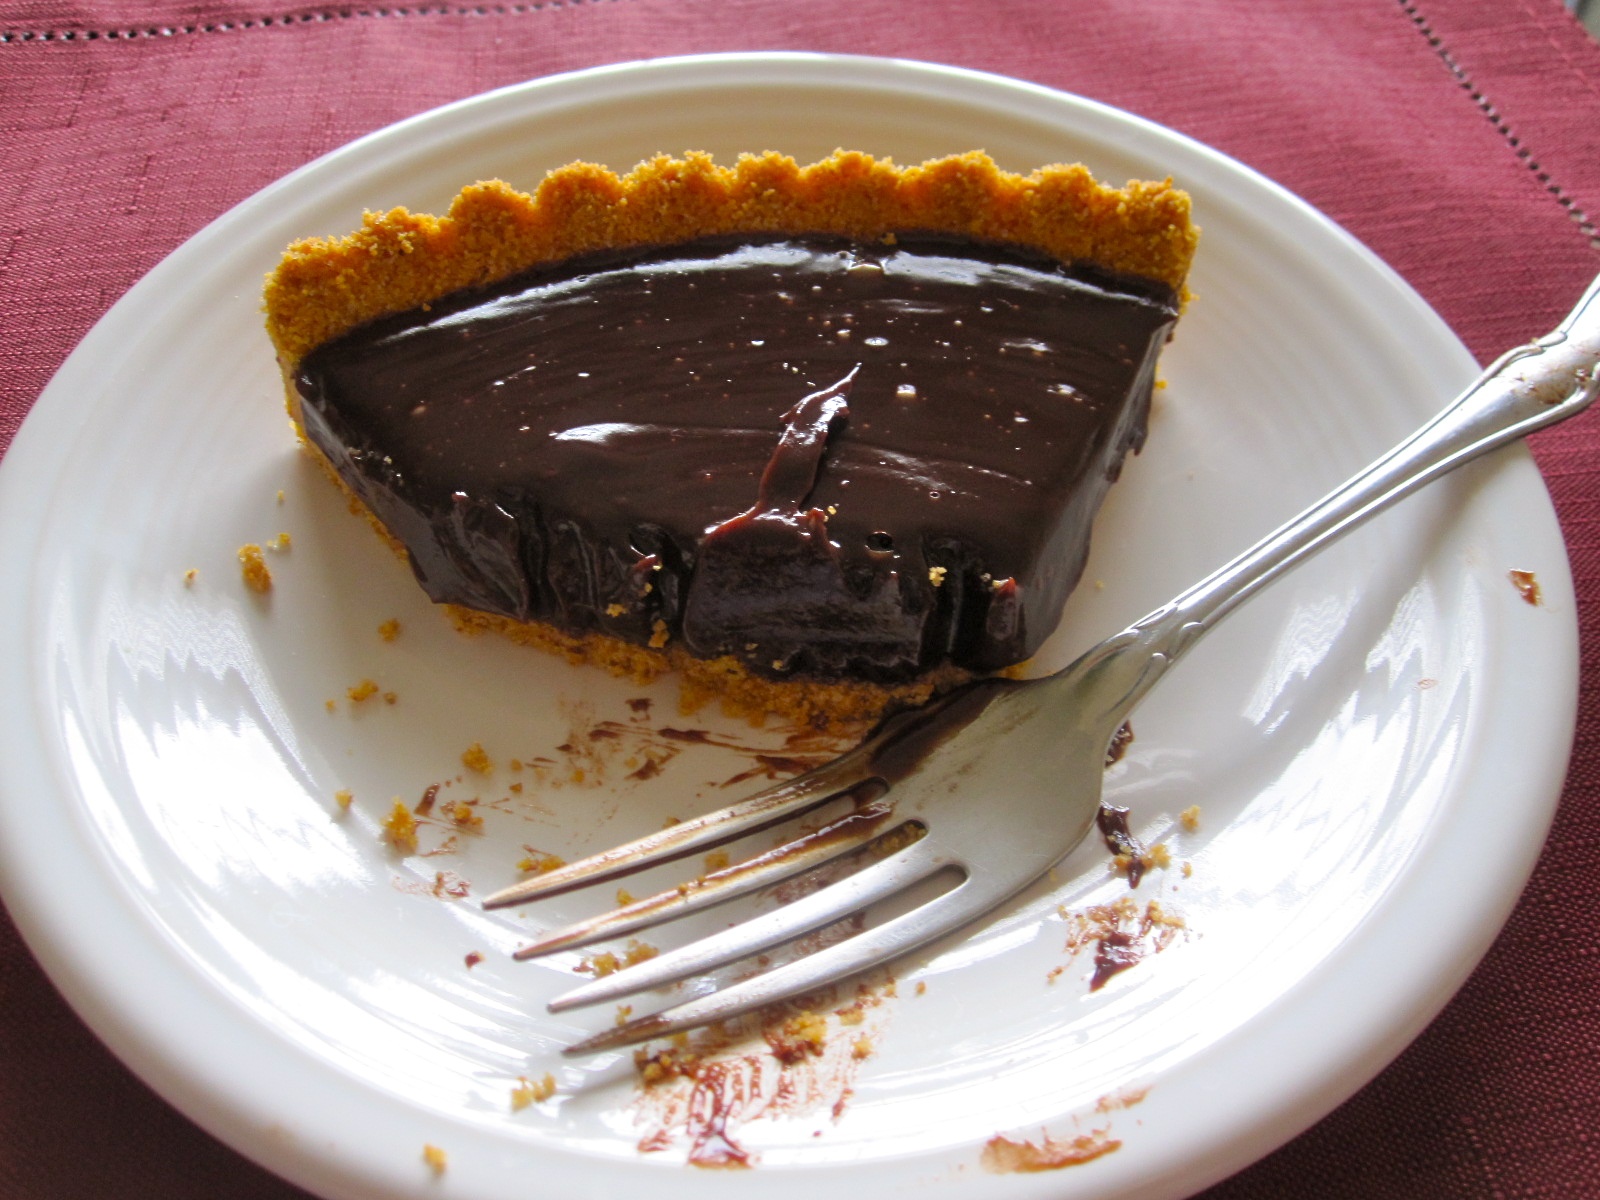 The Cultural Dish: Chocolate Ganache Tart with Hazelnuts